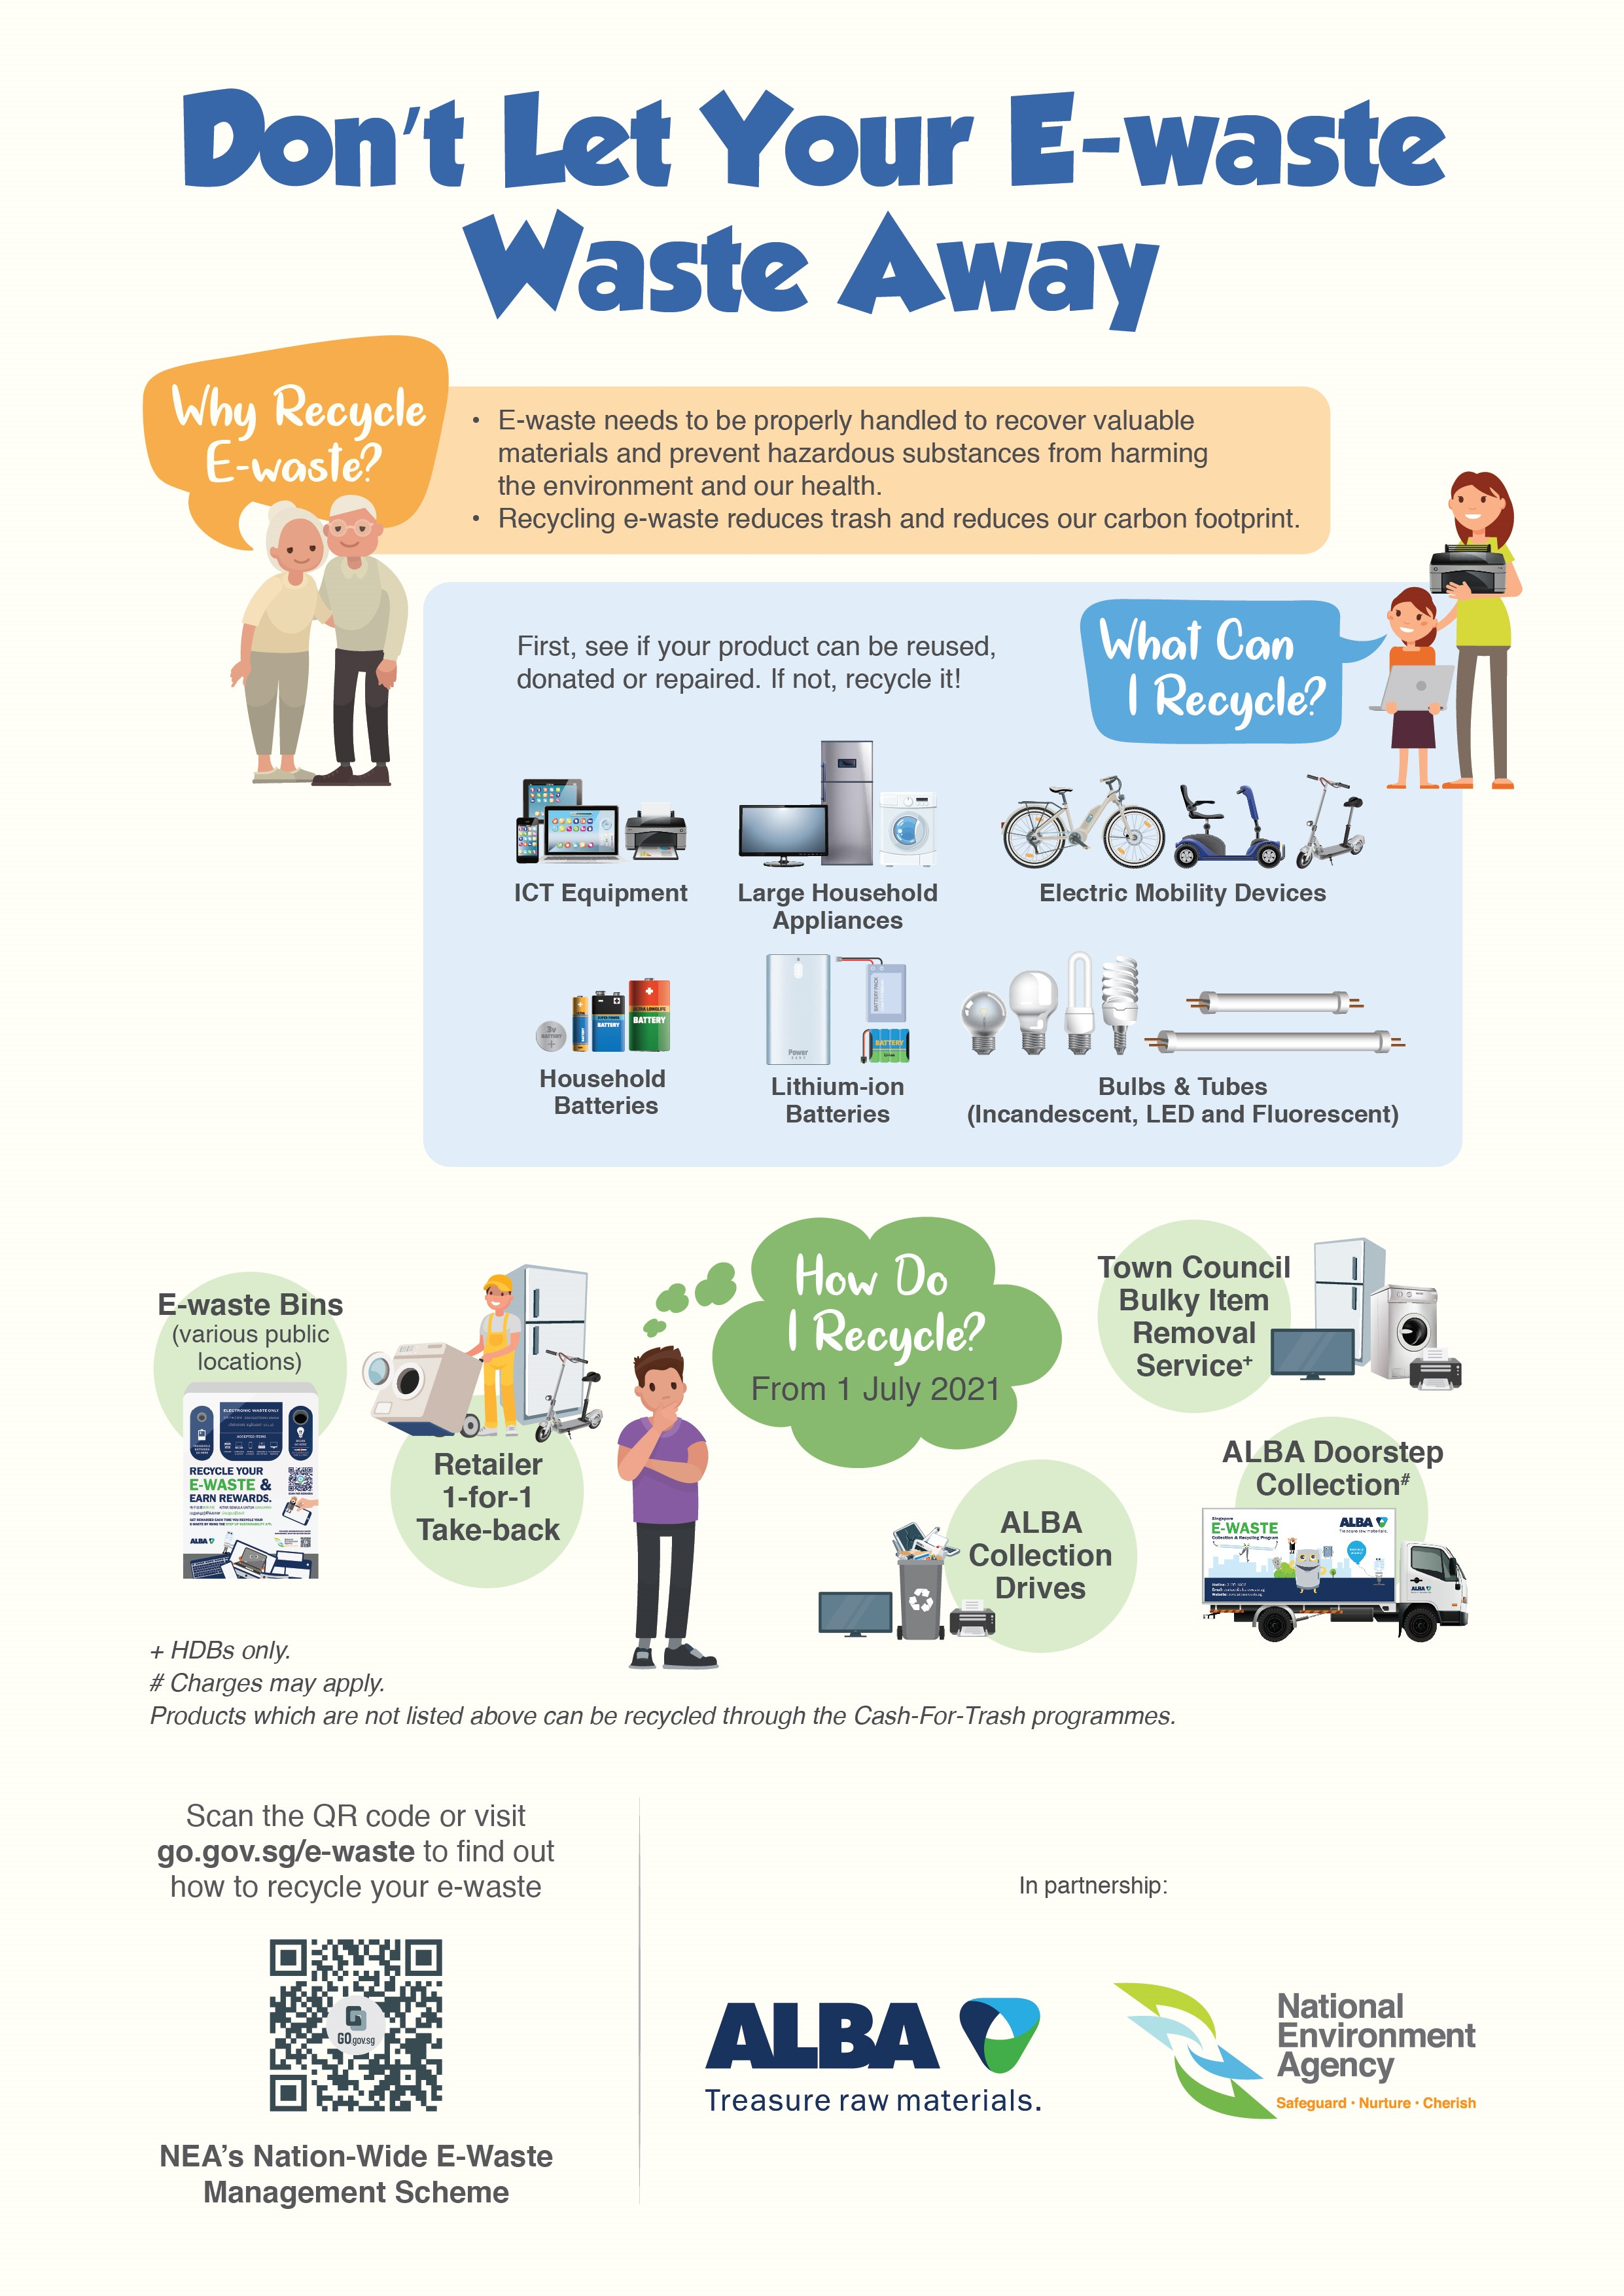 Annex E - Infographic on E-Waste Recycling Under the EPR Scheme